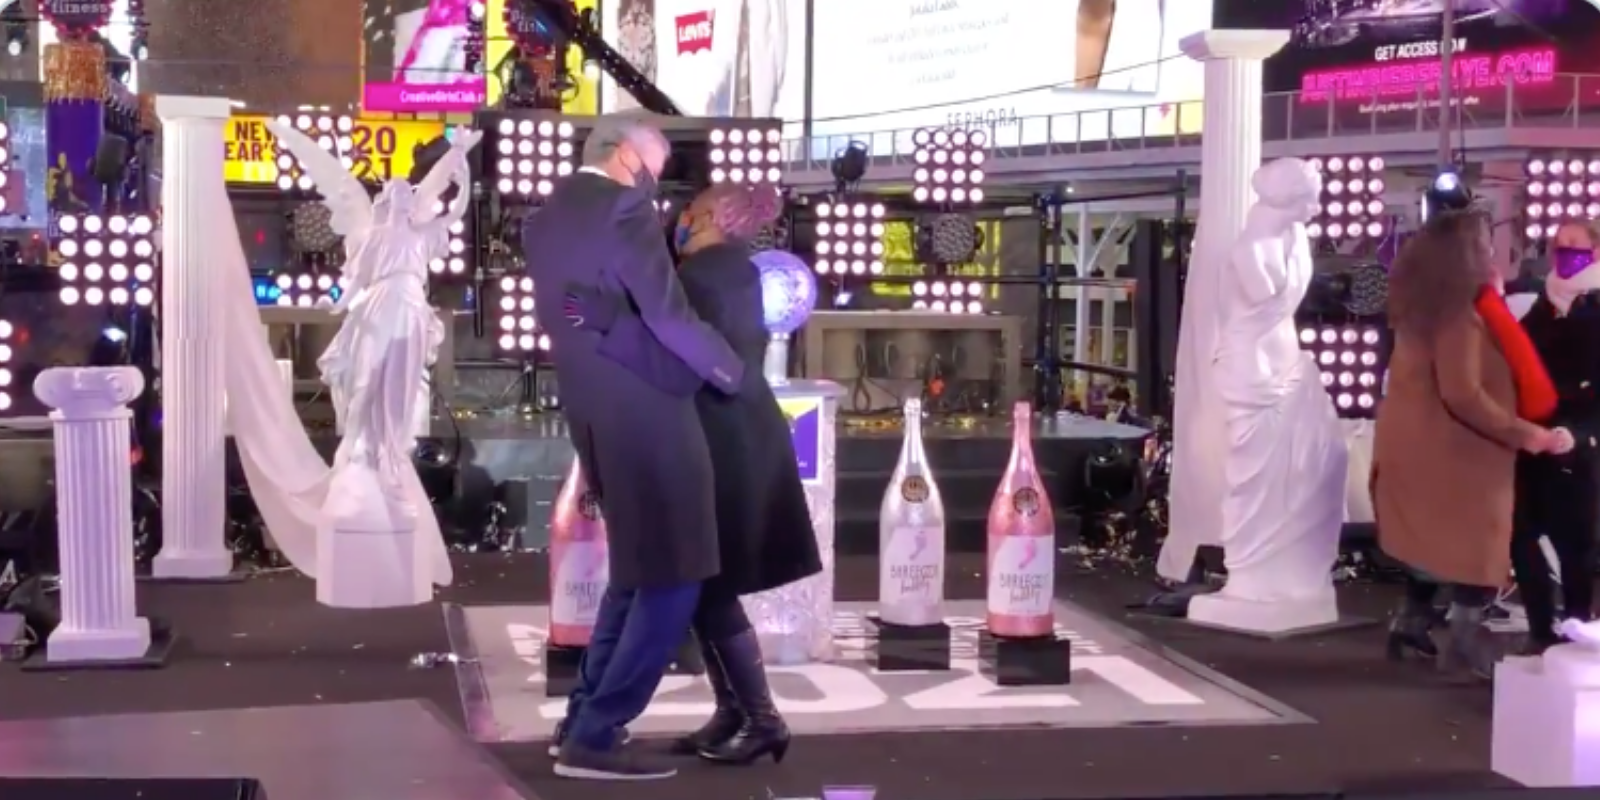 WATCH: Mayor de Blasio dances in Times Square with his wife after shutting down annual New Year's Eve party